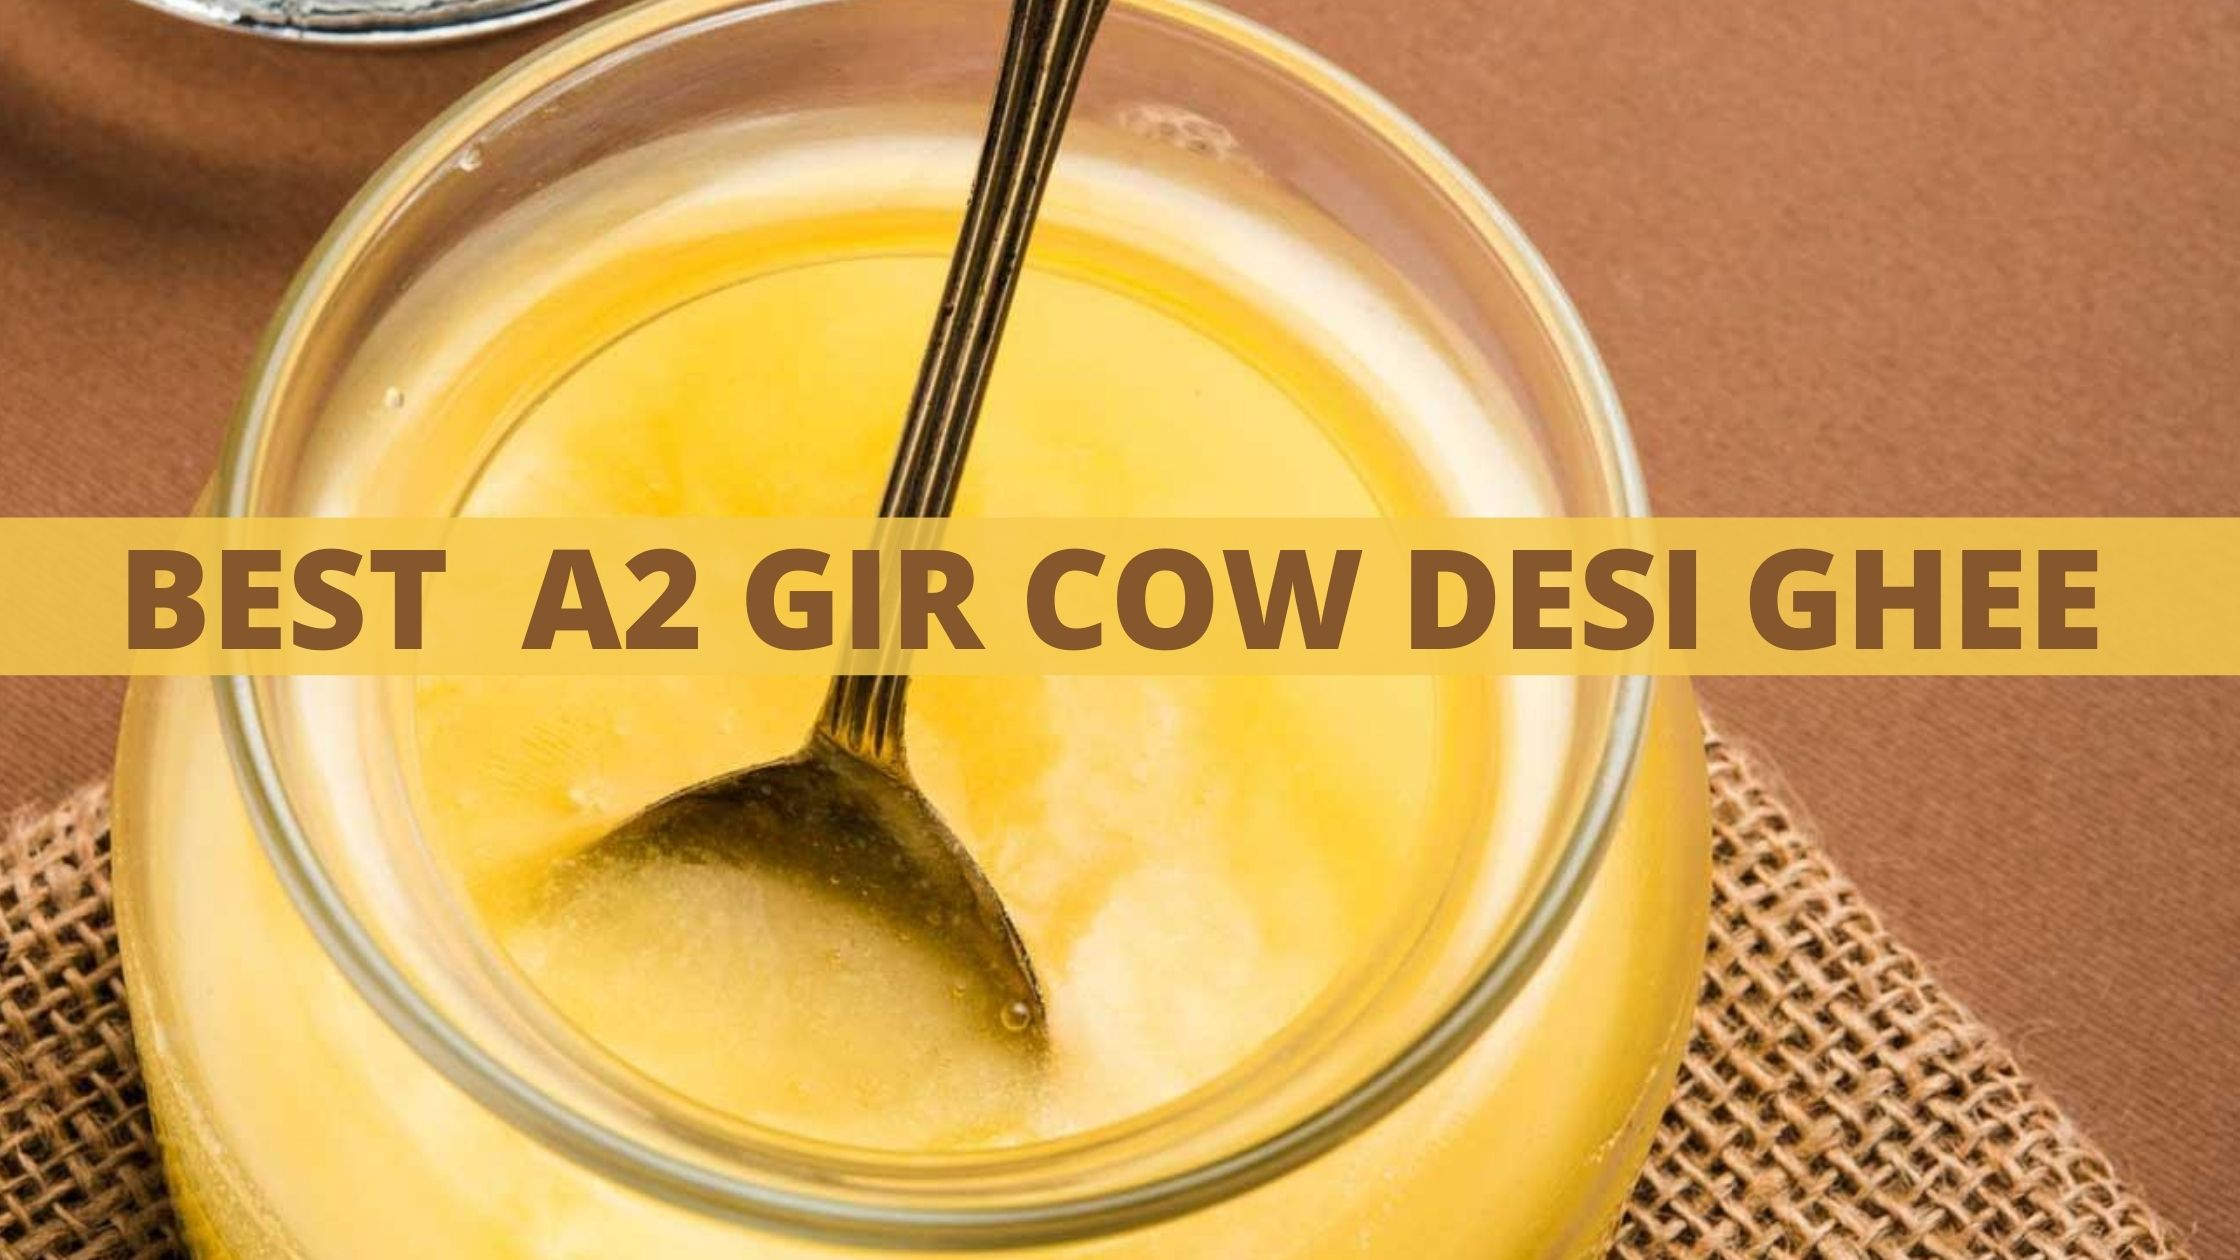 list of Best A2 Cow Ghee available in Market in 2020